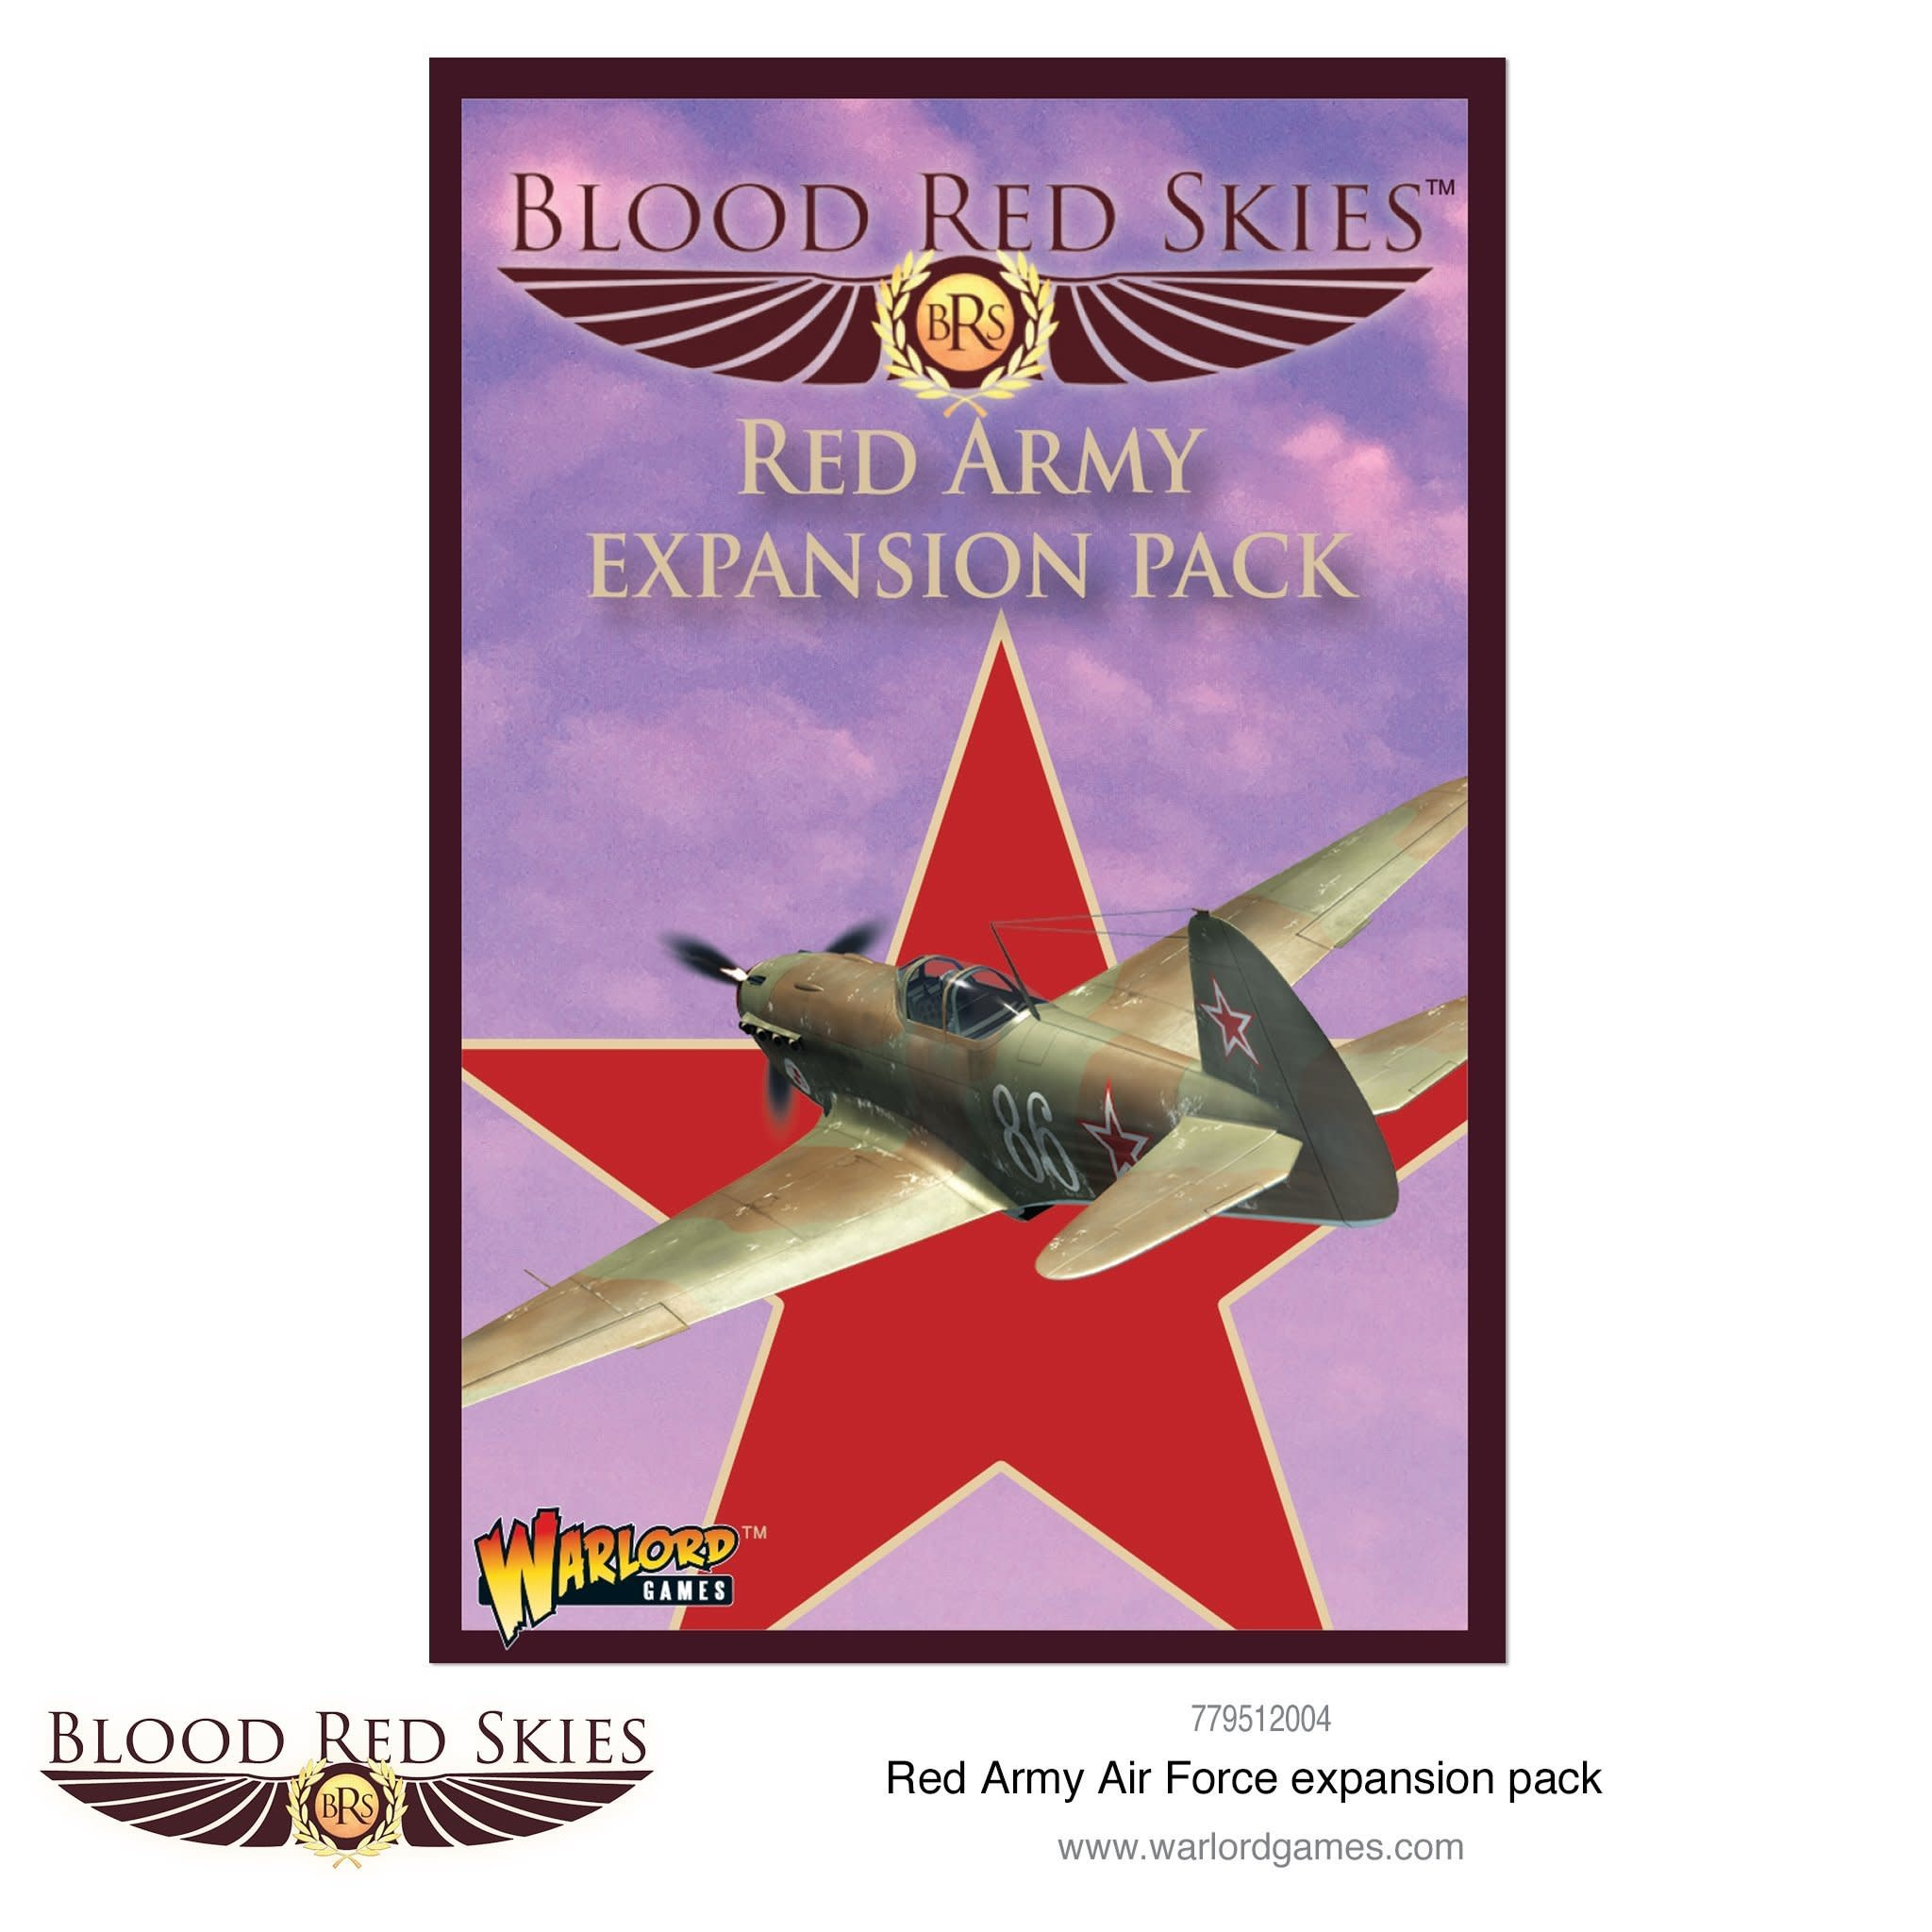 Warlord games Blood Red Skies: Soviet, Red Army Air Force Pack